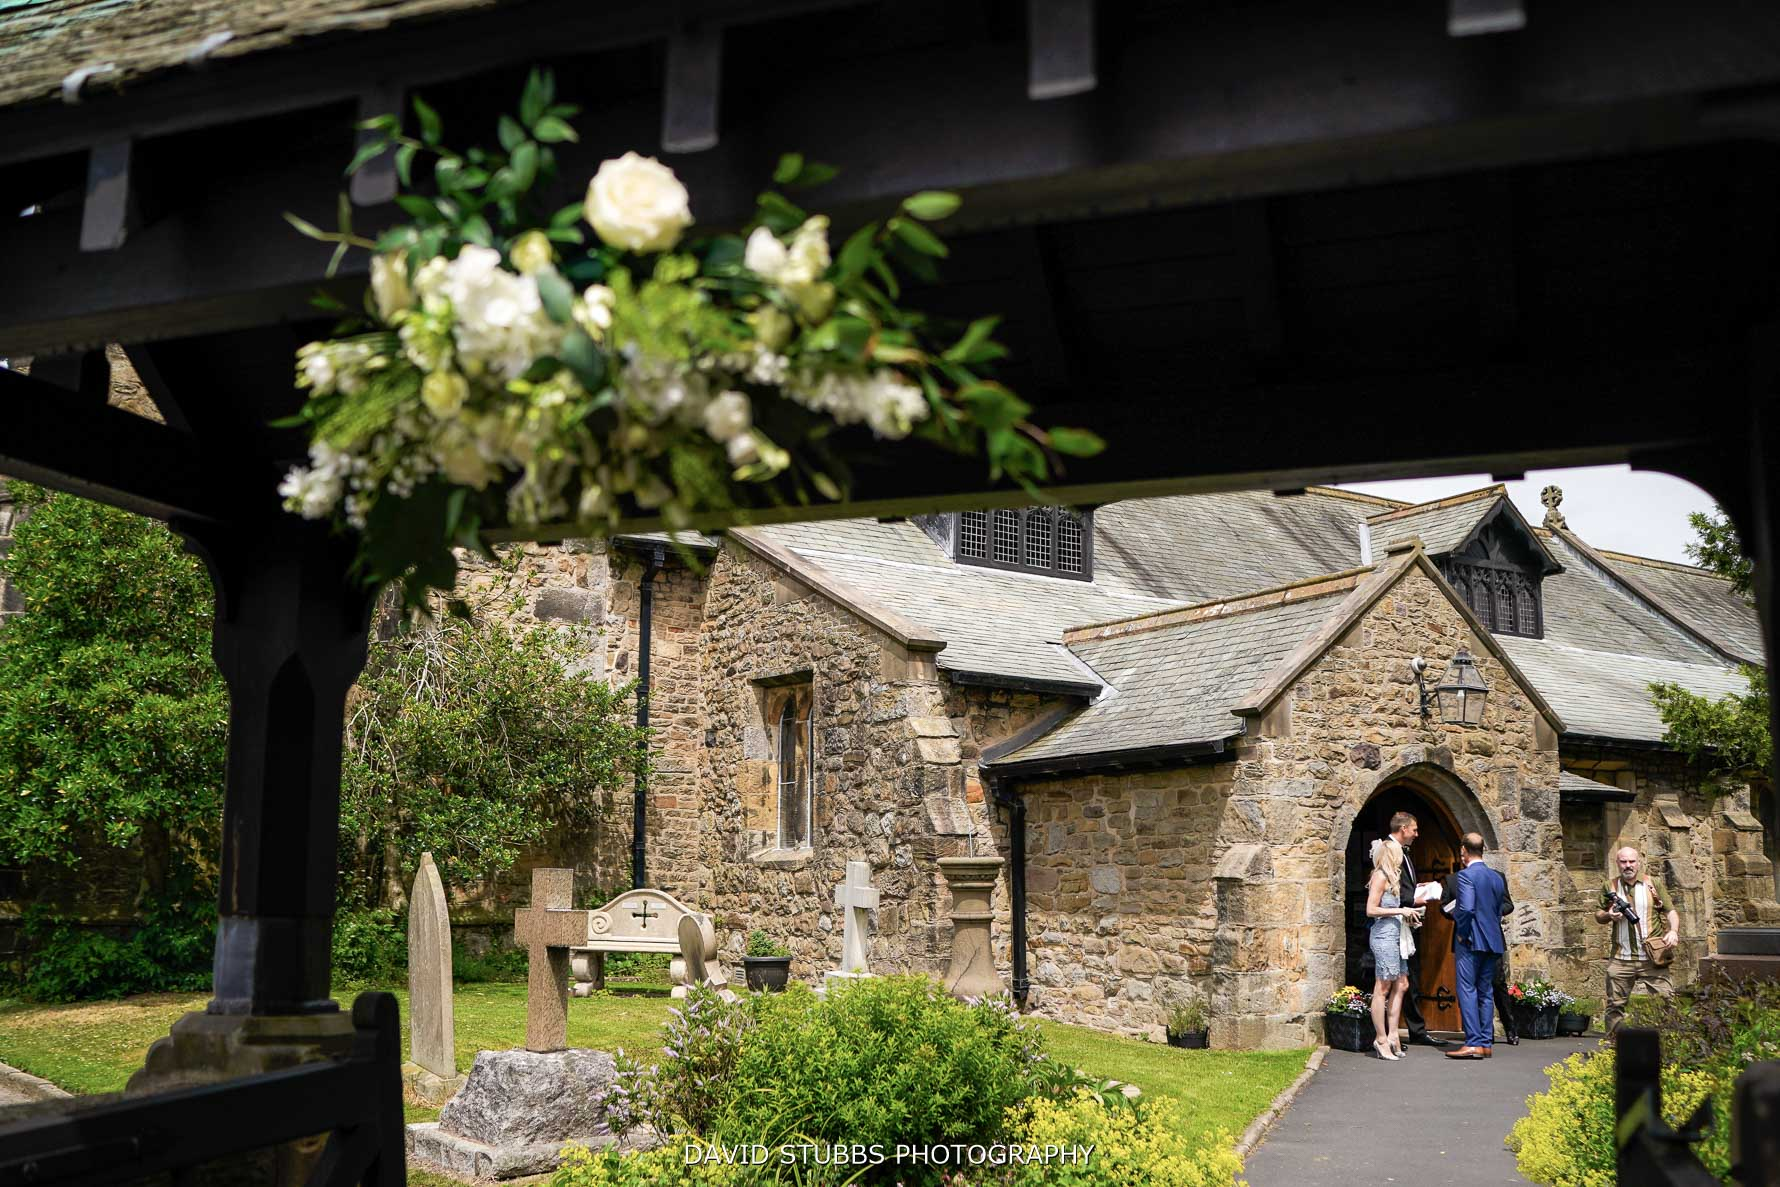 church, the location of the ceremony